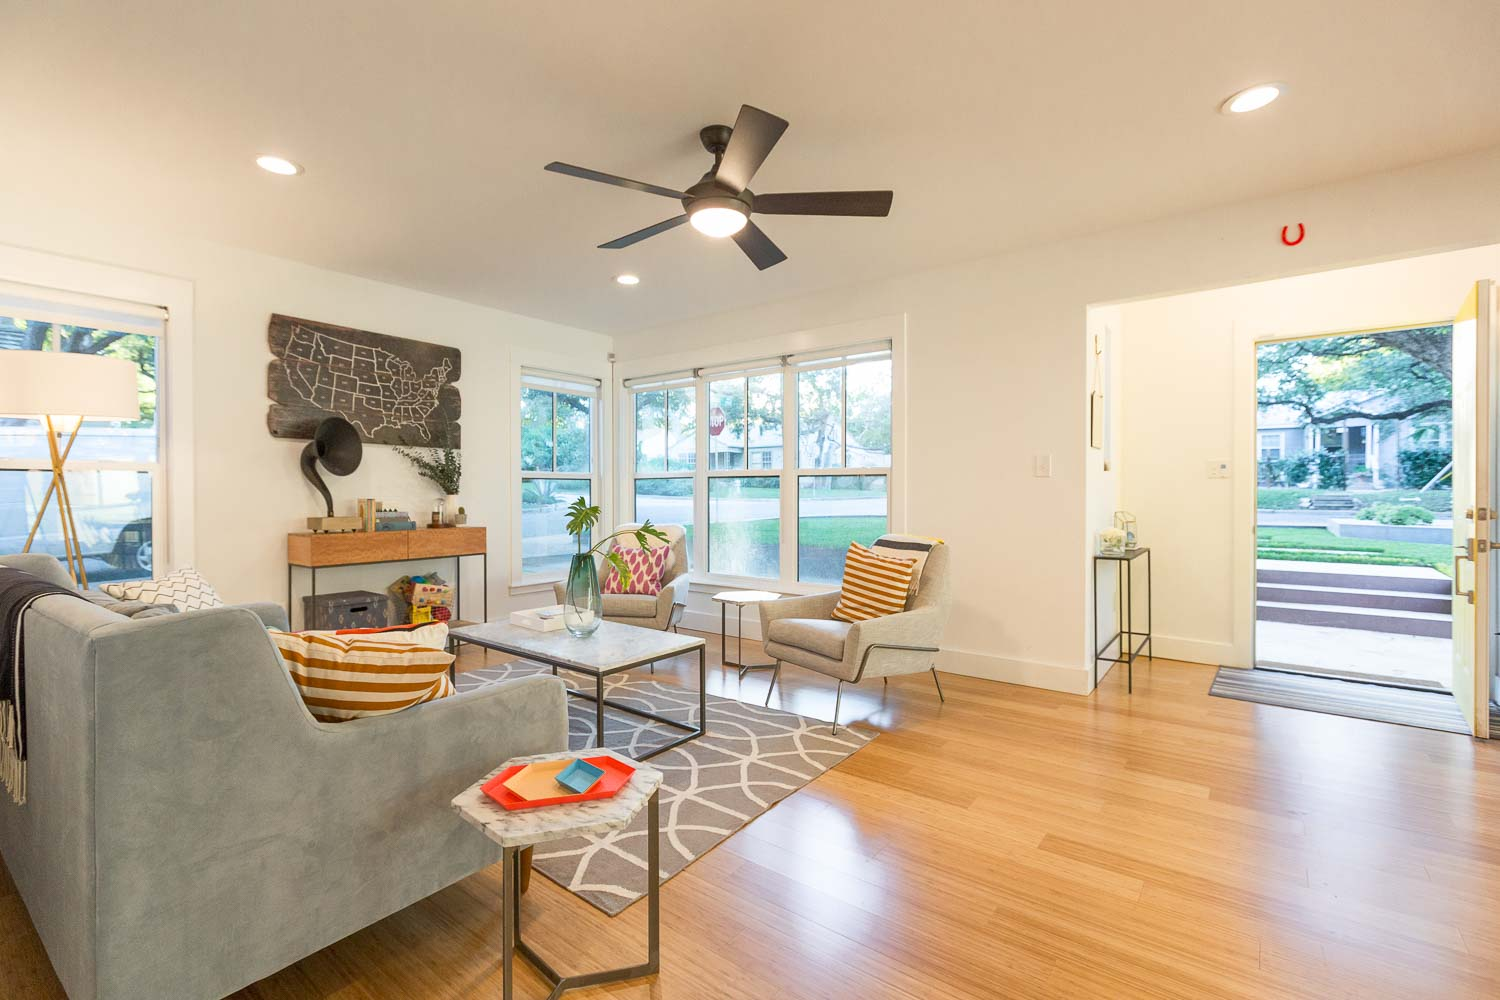 The formal living room has been completely remodeled with new windows and finishes. We love the entry nook common in 1940s homes. The durable bamboo floors are perfect for a family friendly home!